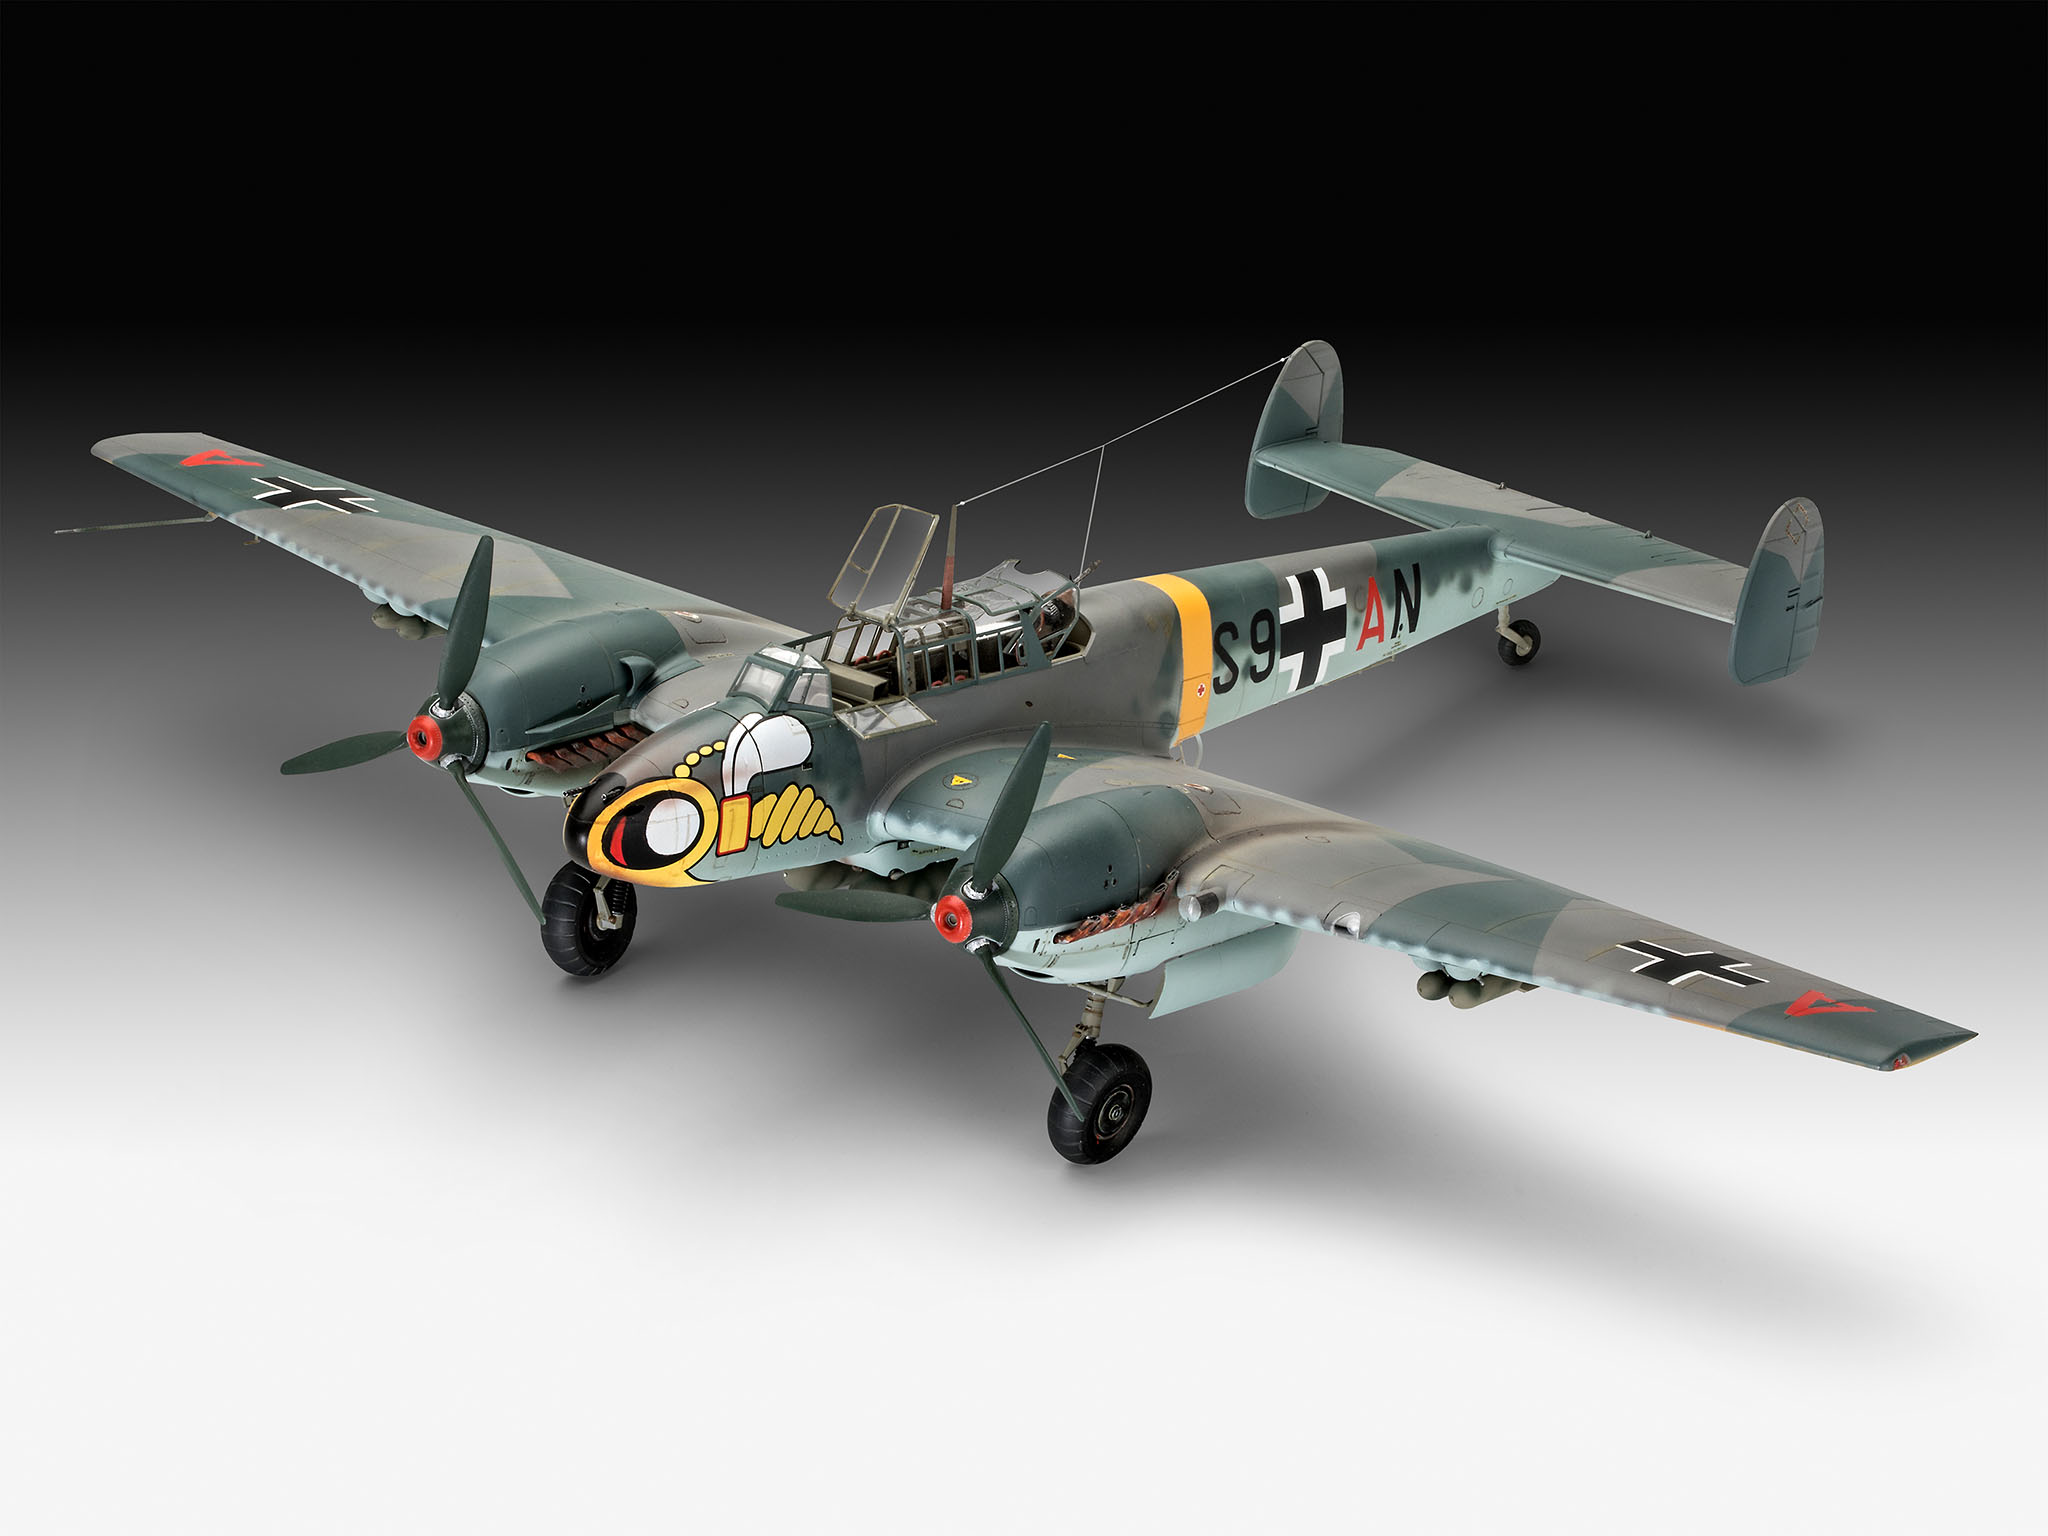 https://www.revell.de/out/pictures/master/product/1/04961_mpmesserschmitt_bf110_c_7.jpg